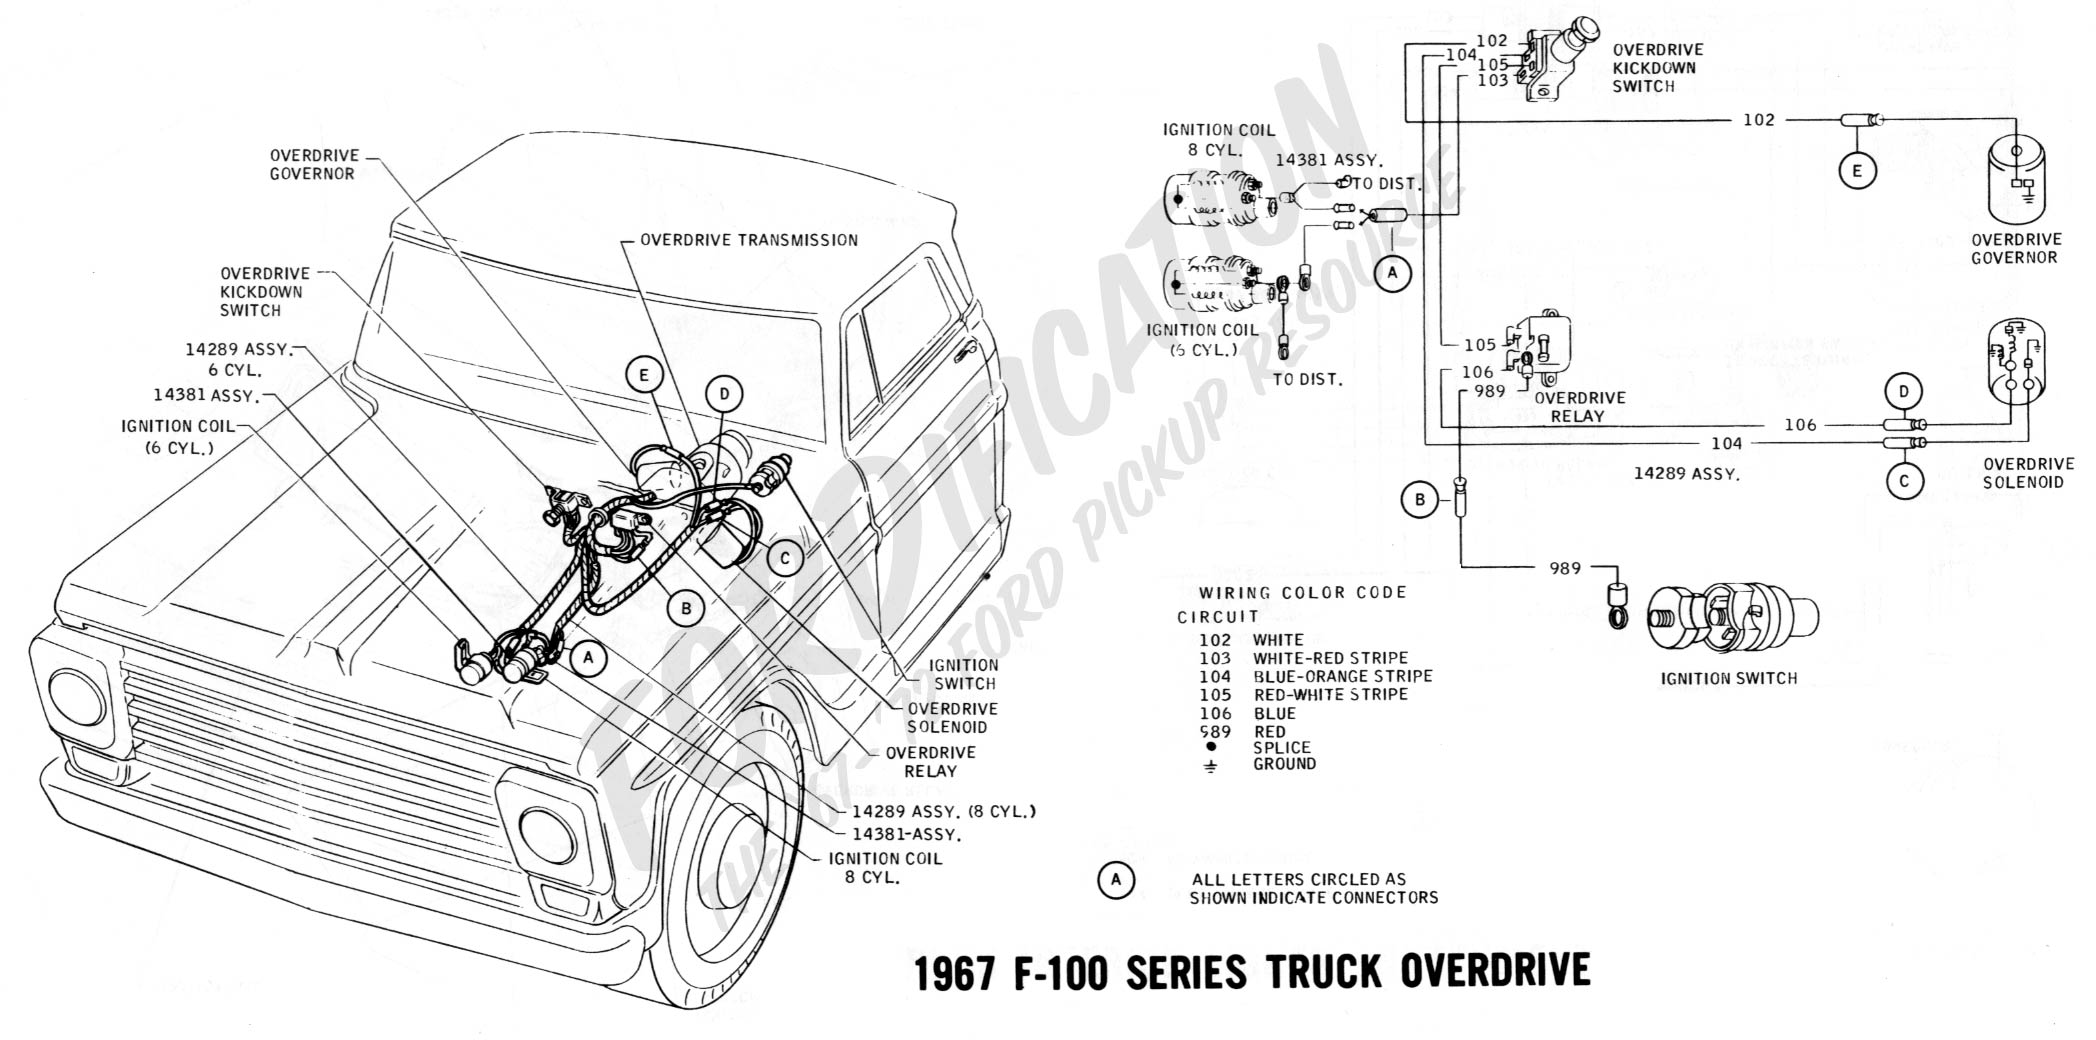 Wiring Diagram 2000 Chevy Silverado furthermore Diagram view in addition 1972 Chevy Truck Vin Location besides 1978 Corvette Steering Column Diagram also 6gapf Dodge Need Know Proper Remove Body Control. on chevy truck steering column wiring diagram